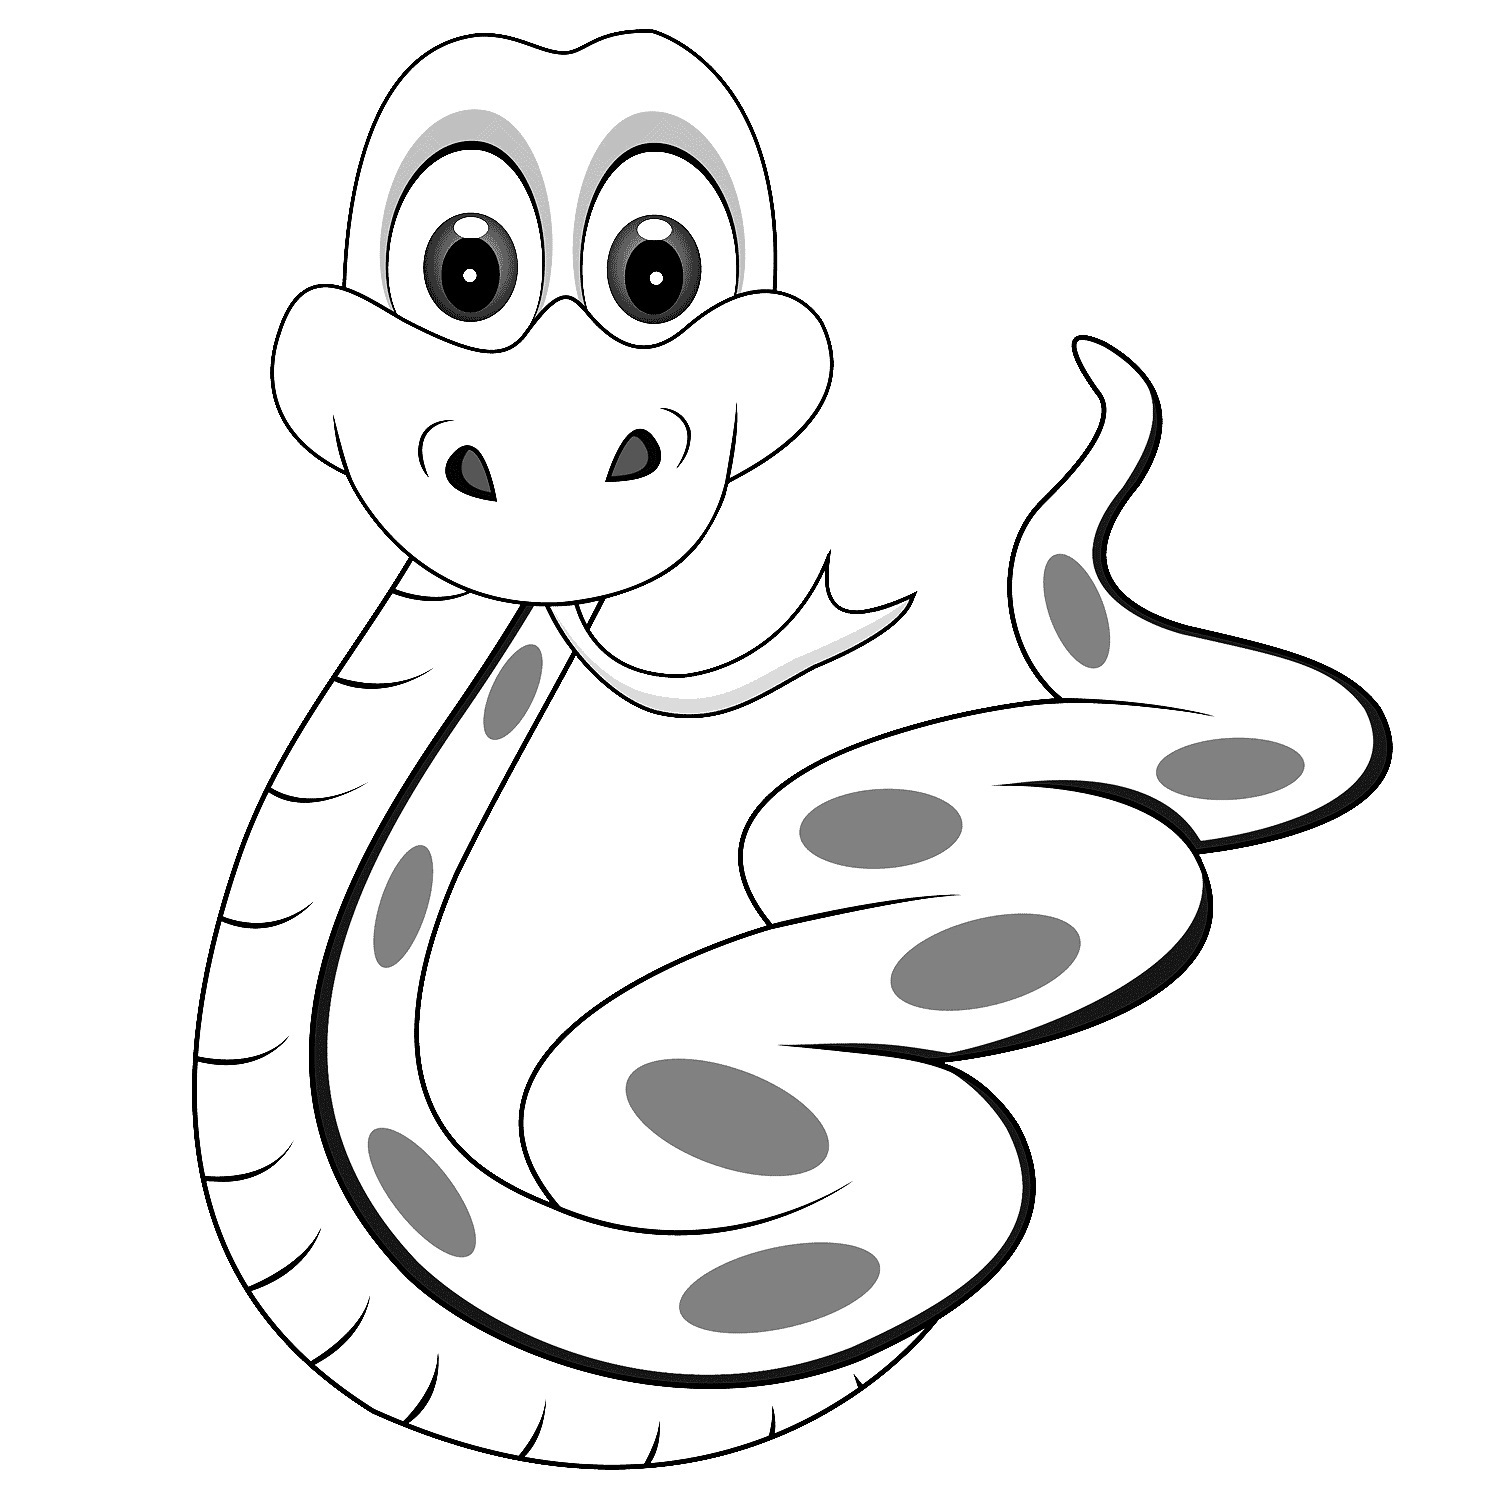 Rattle Coloring Page Coloring Coloring Cobra Snake Pages For Kids Animal Page Sheet